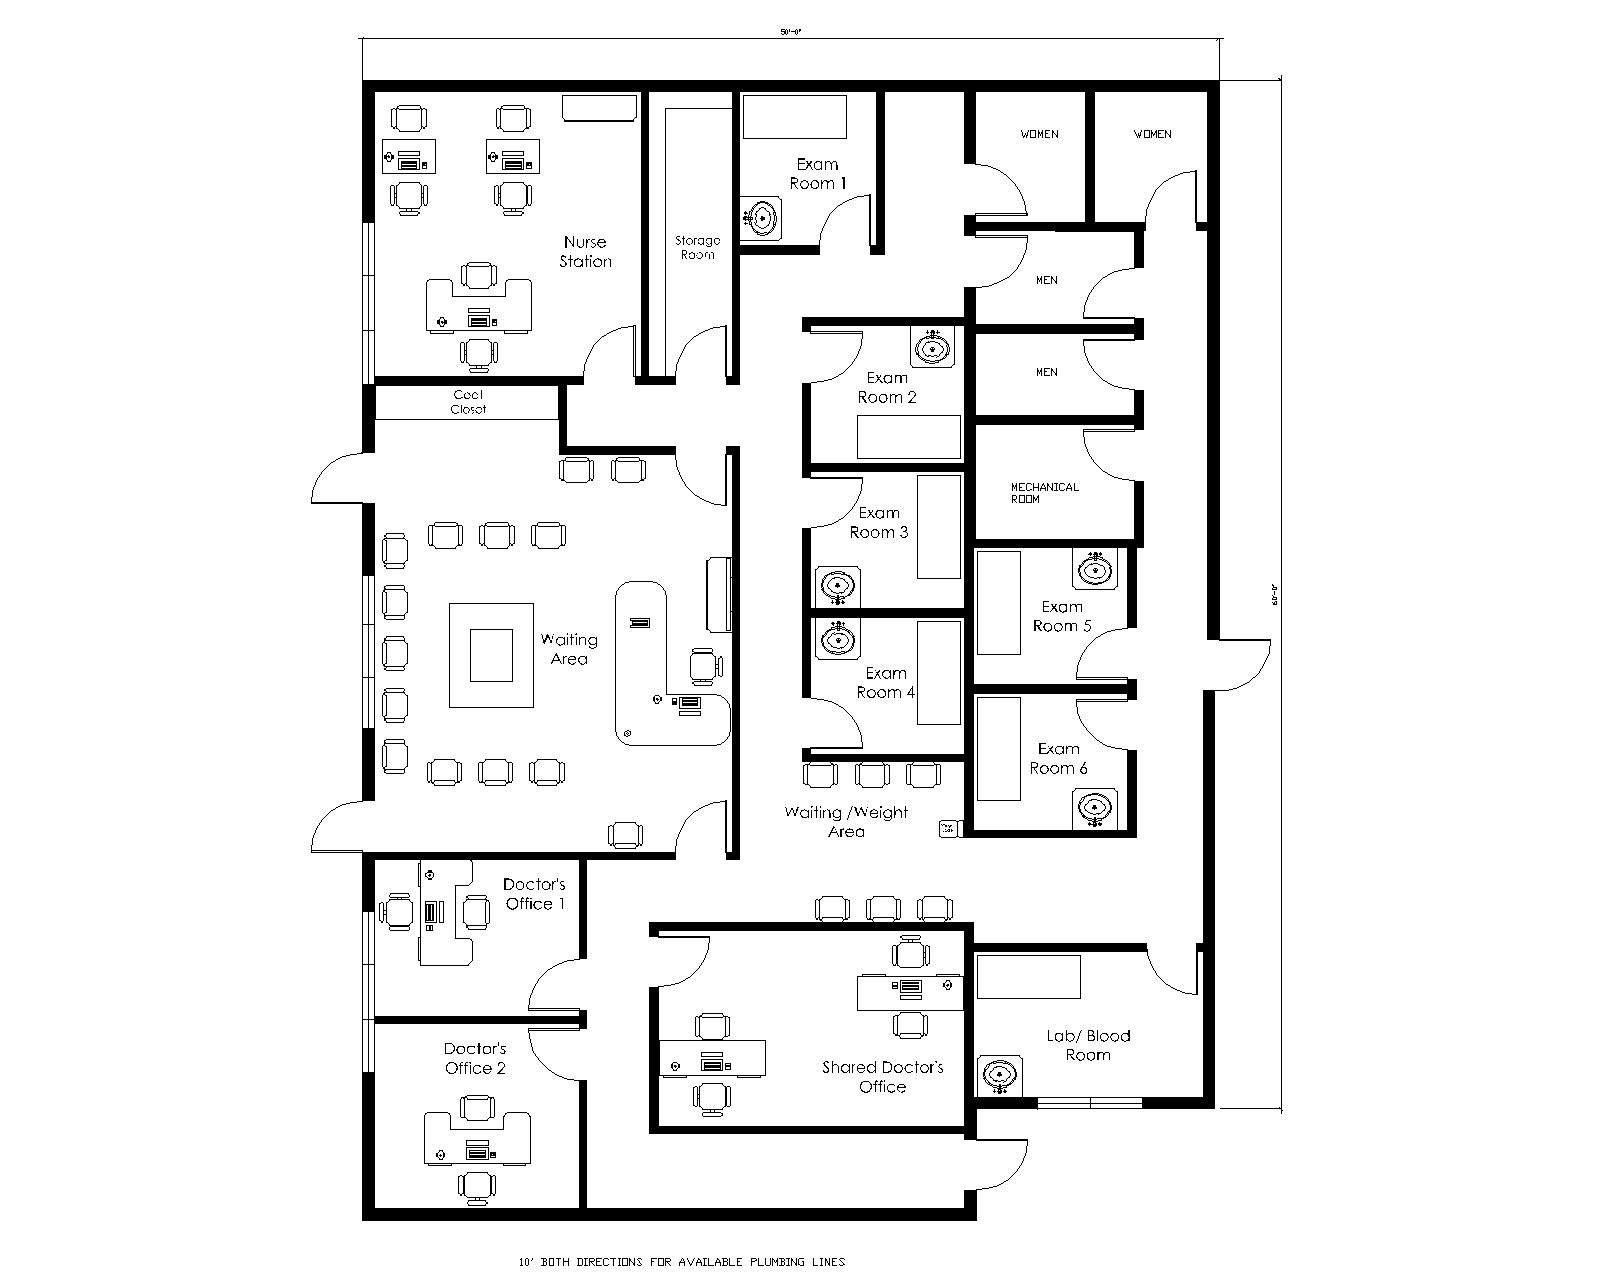 medical office design plans doctors office layout design | medical